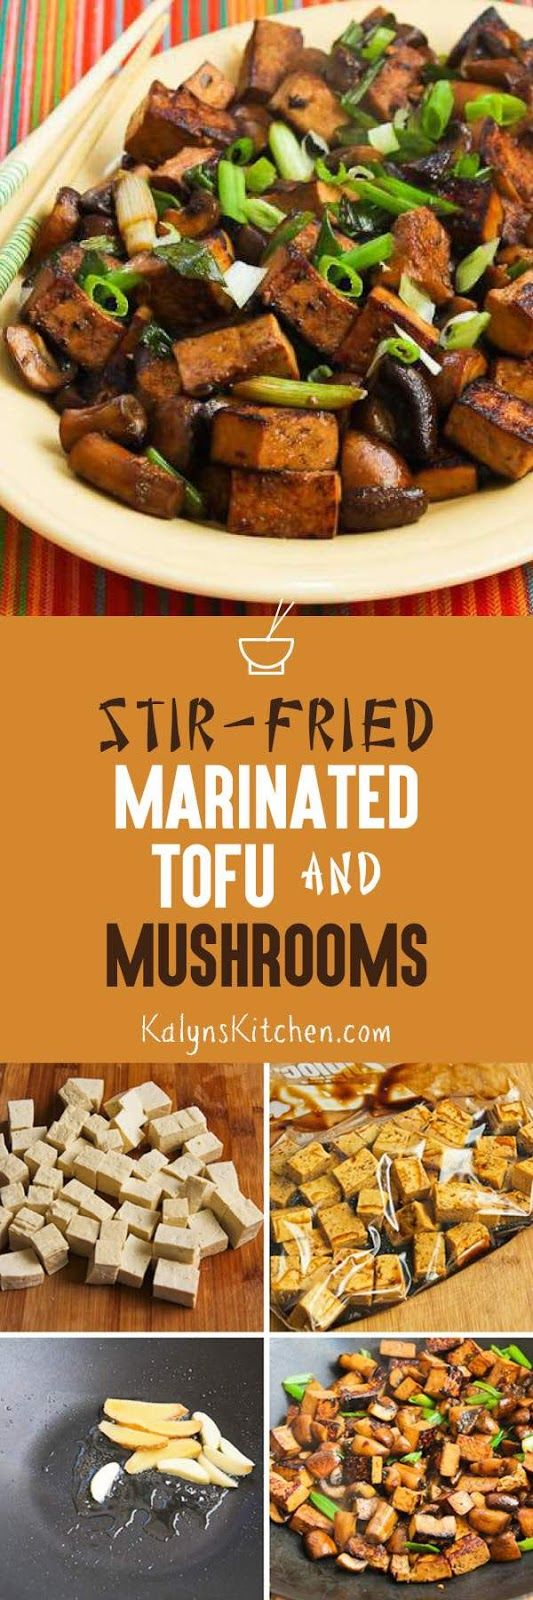 Stir-Fried Marinated Tofu and Mushrooms is a delicious dish that's ...